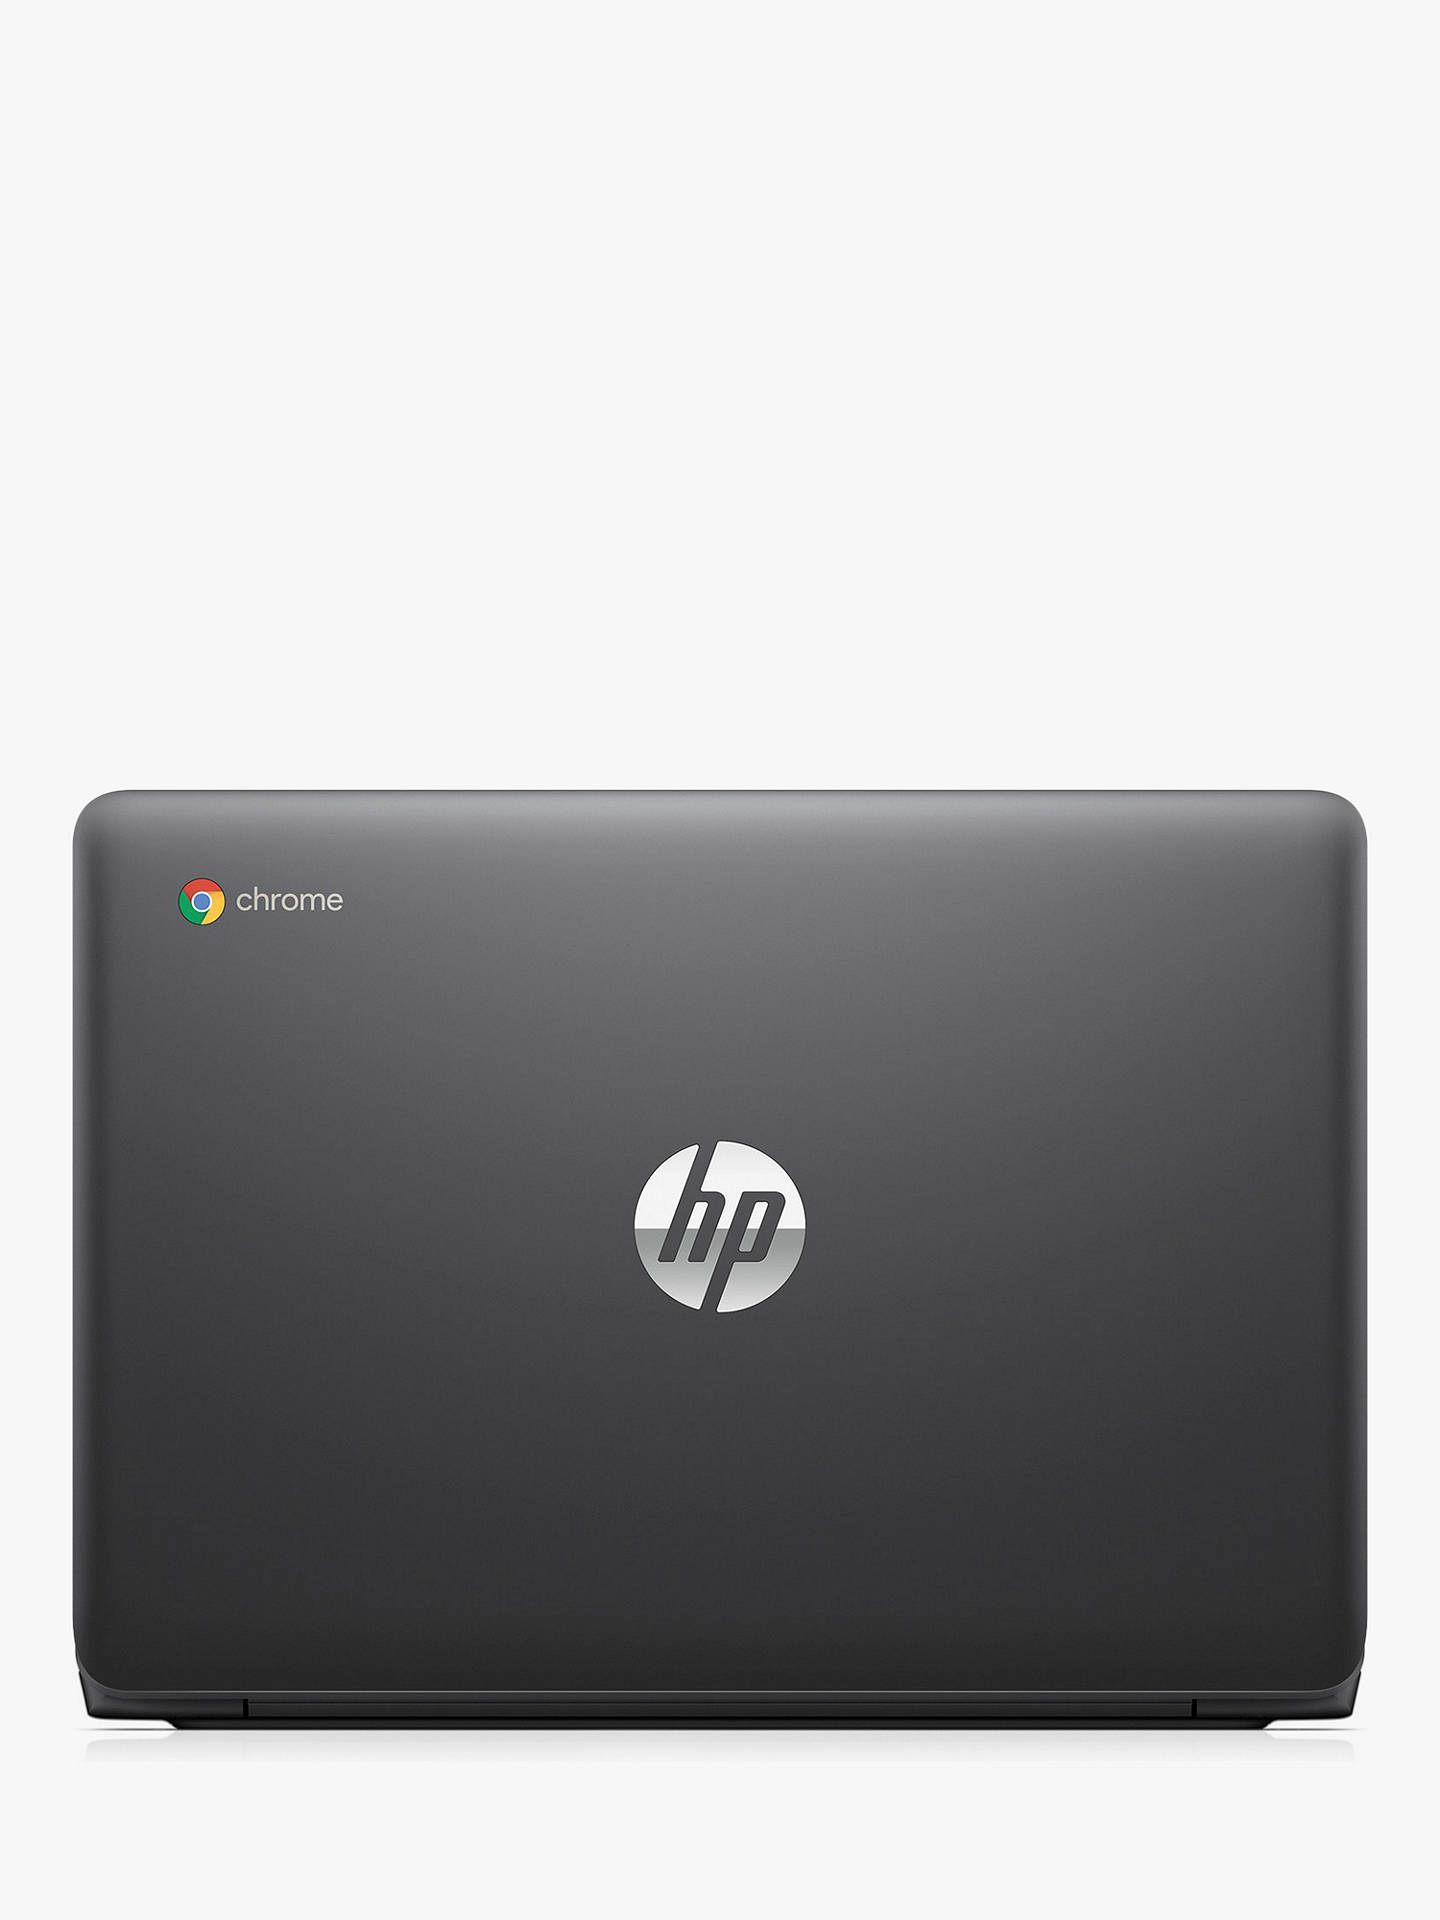 "Buy HP 11-v001n Chromebook, Intel Celeron, 4GB RAM, 16GB eMMC, 11.6"", Grey Online at johnlewis.com"